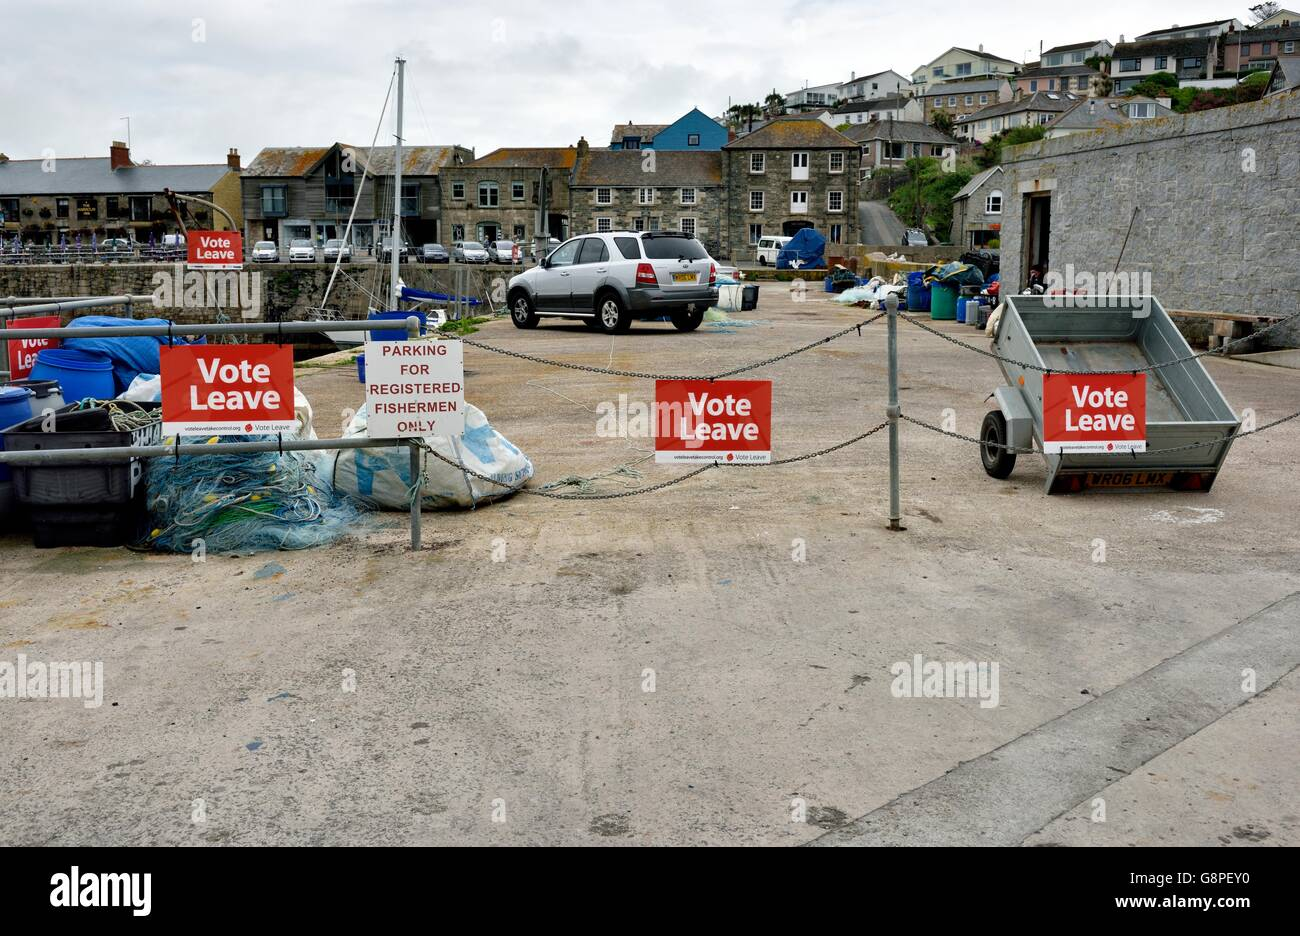 Brexit vote leave signs in Porthleven Harbour Cornwall England UK - Stock Image